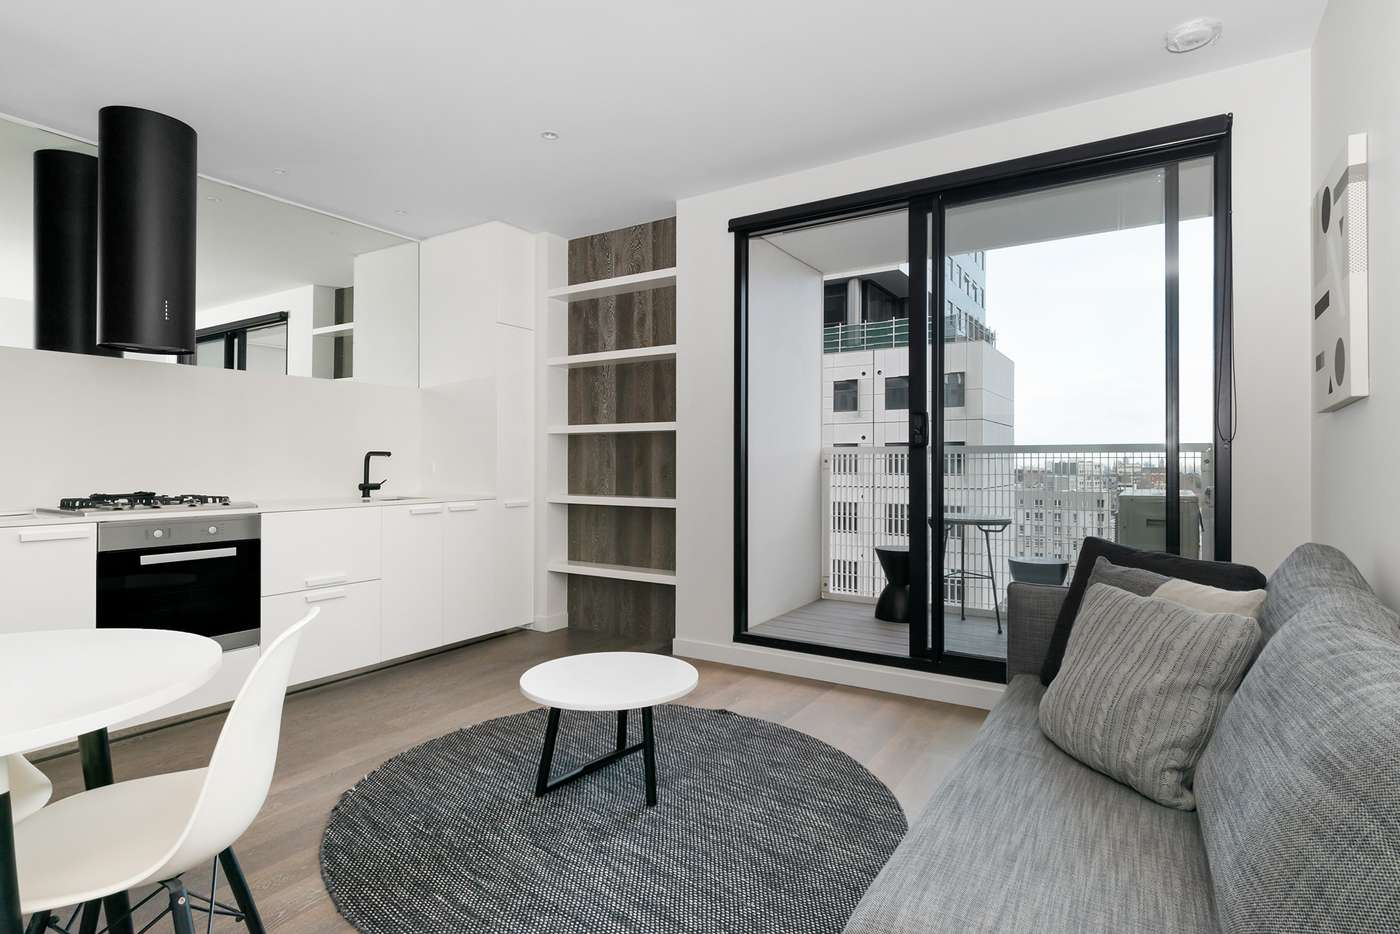 Main view of Homely house listing, 102/518 Swanston Street, Carlton VIC 3053